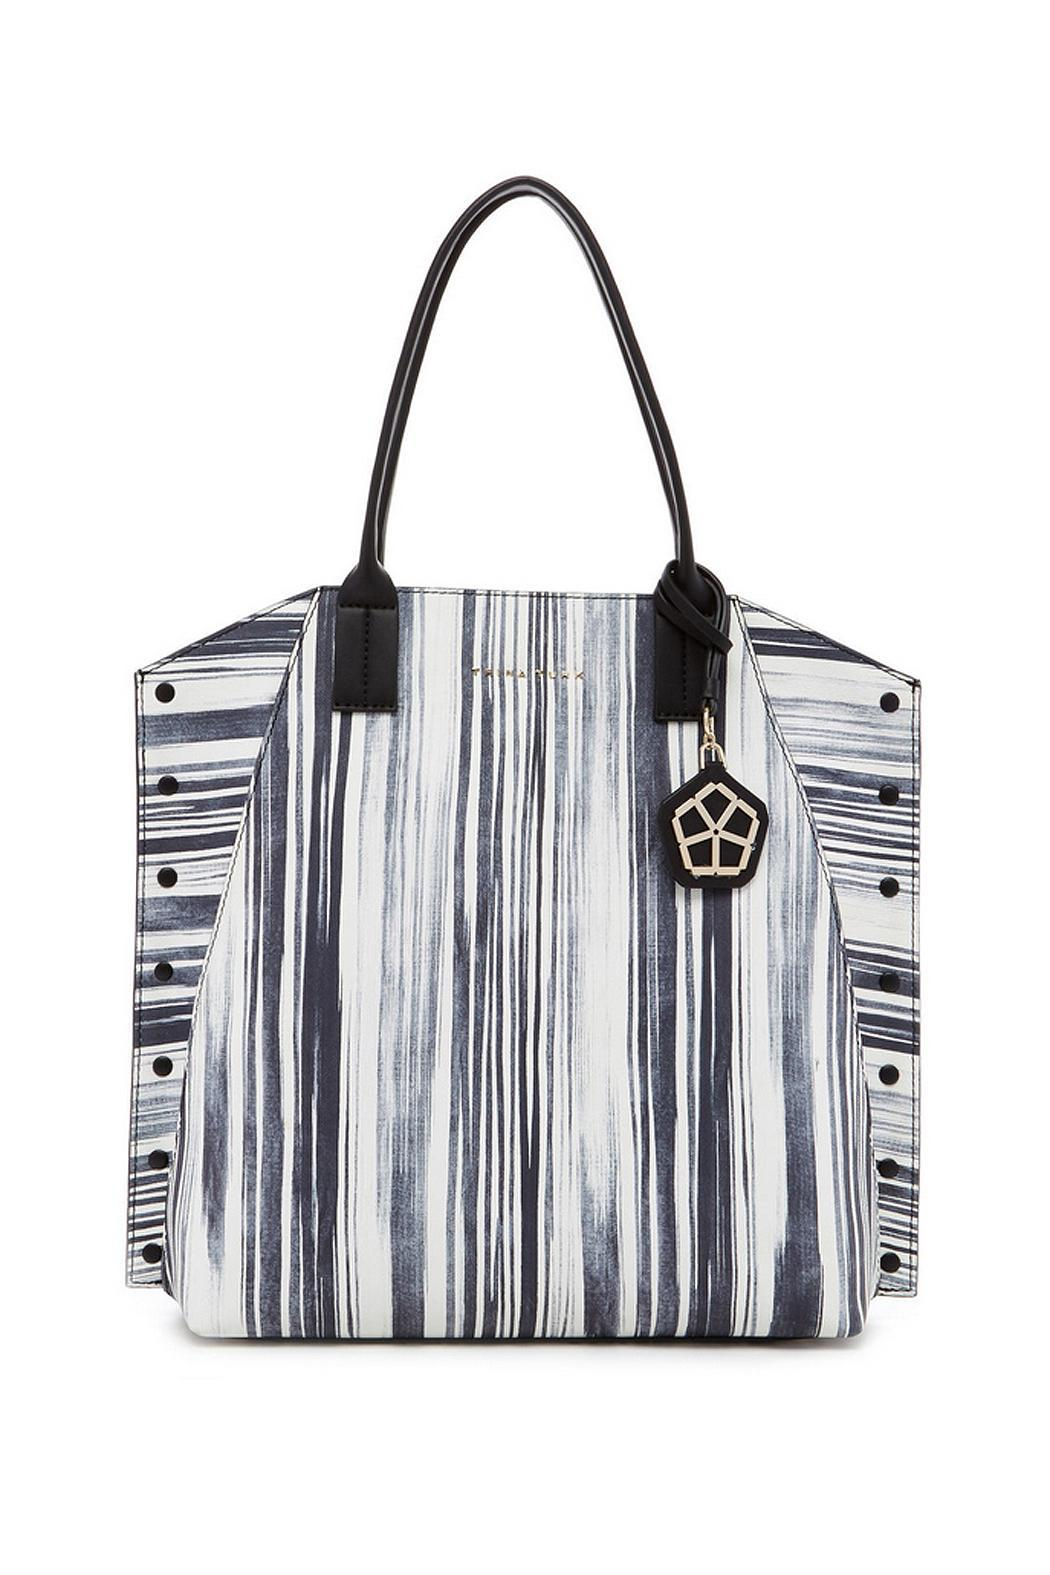 Trina Turk Bungalow N S Tote Front Cropped Image